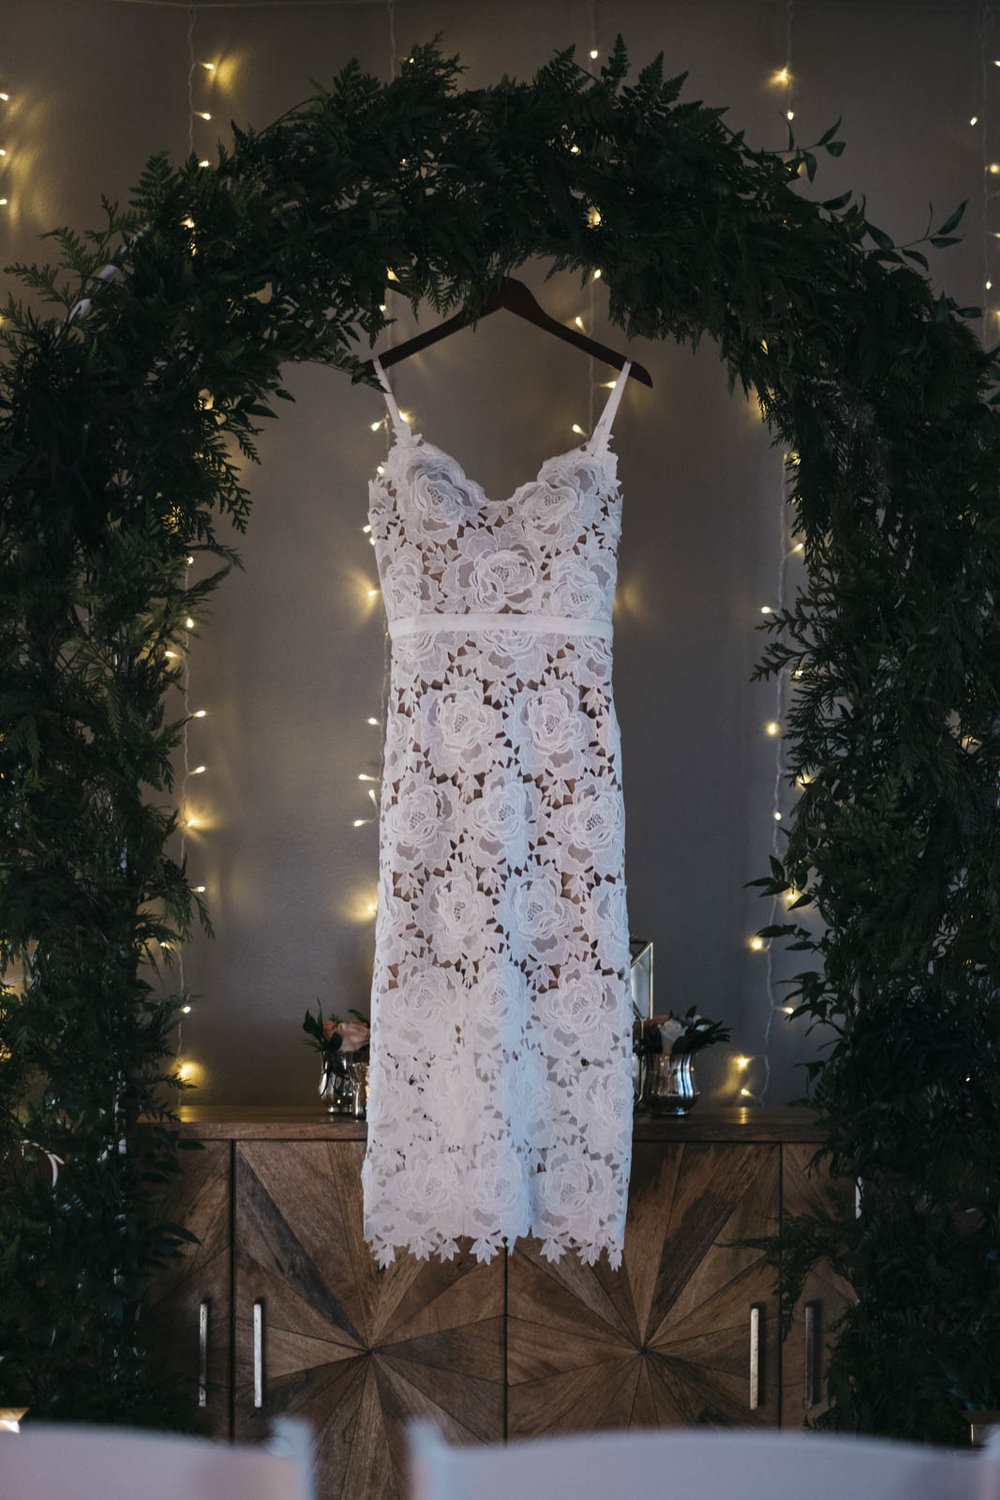 Wedding dress hanging in archway in home.